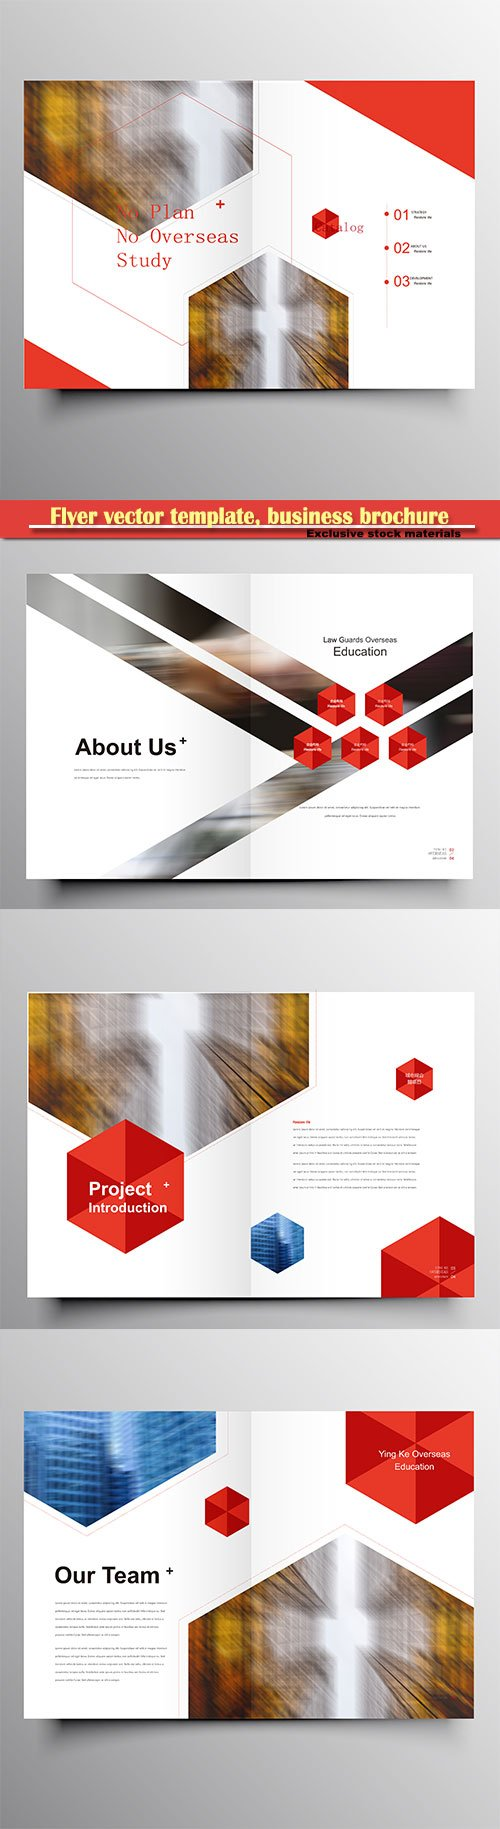 Flyer vector template, business brochure, magazine cover # 34